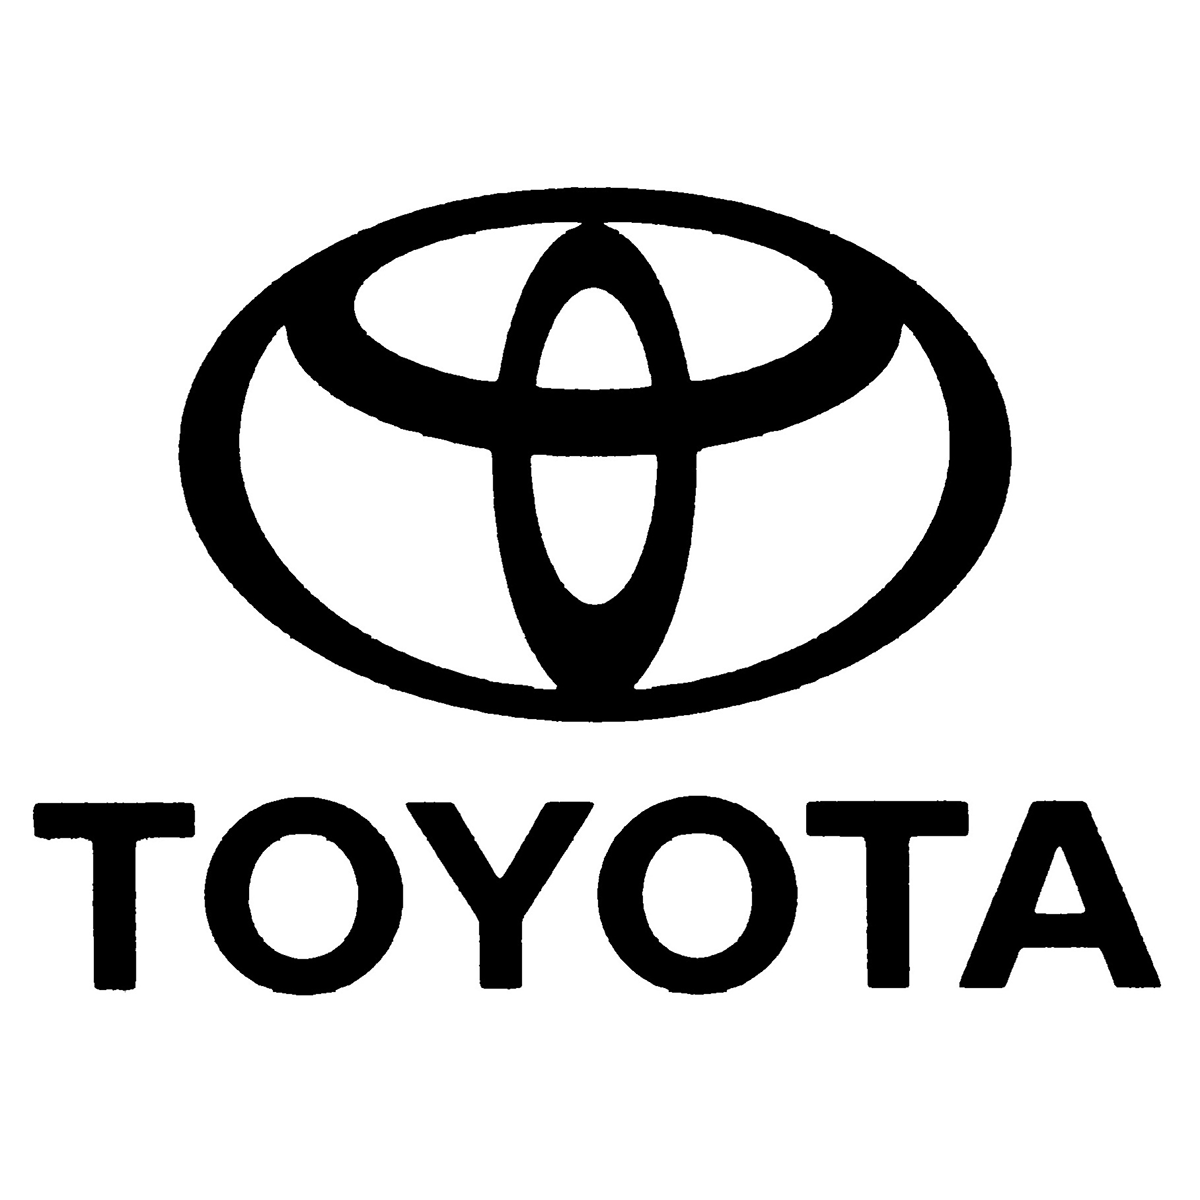 Toyota_Vector_Logo_01.png